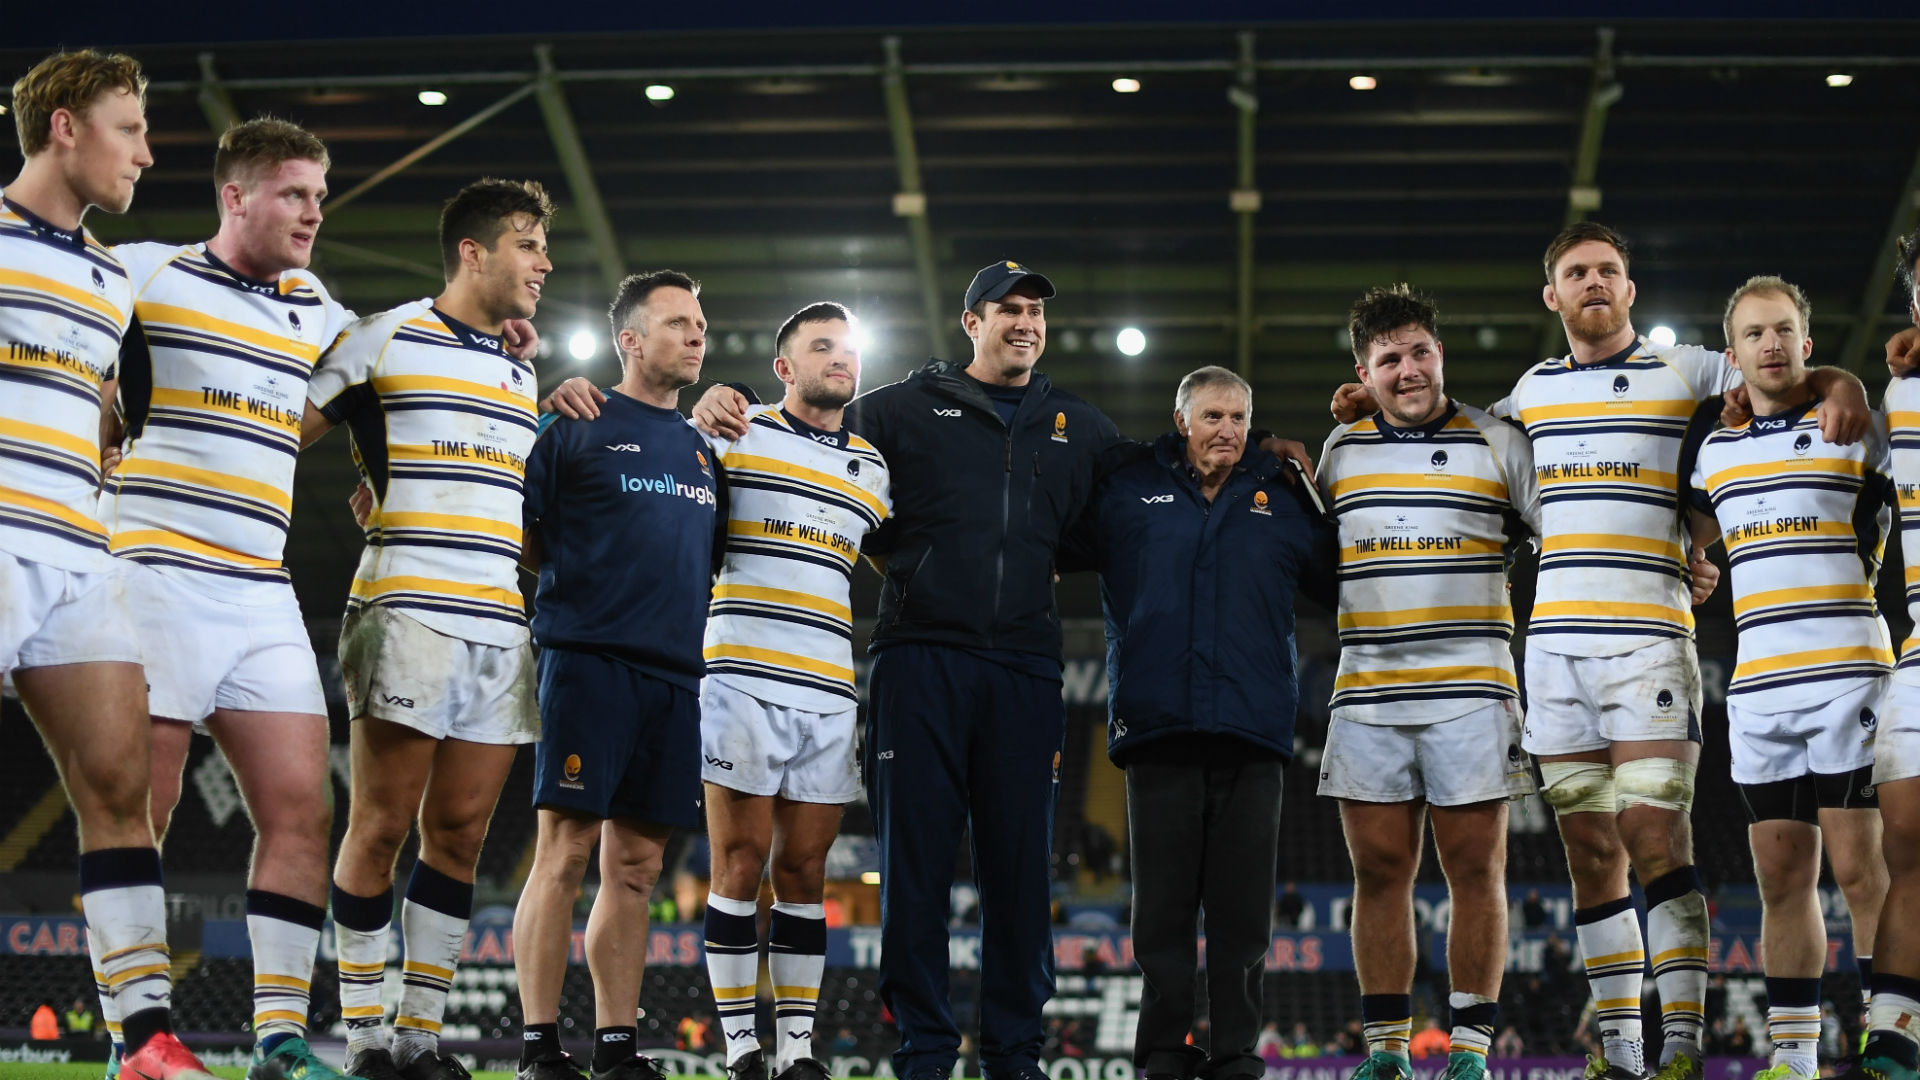 Ryan Mills' last-gasp drop goal put Worcester Warriors into the last eight of the Challenge Cup for the first time in a decade.